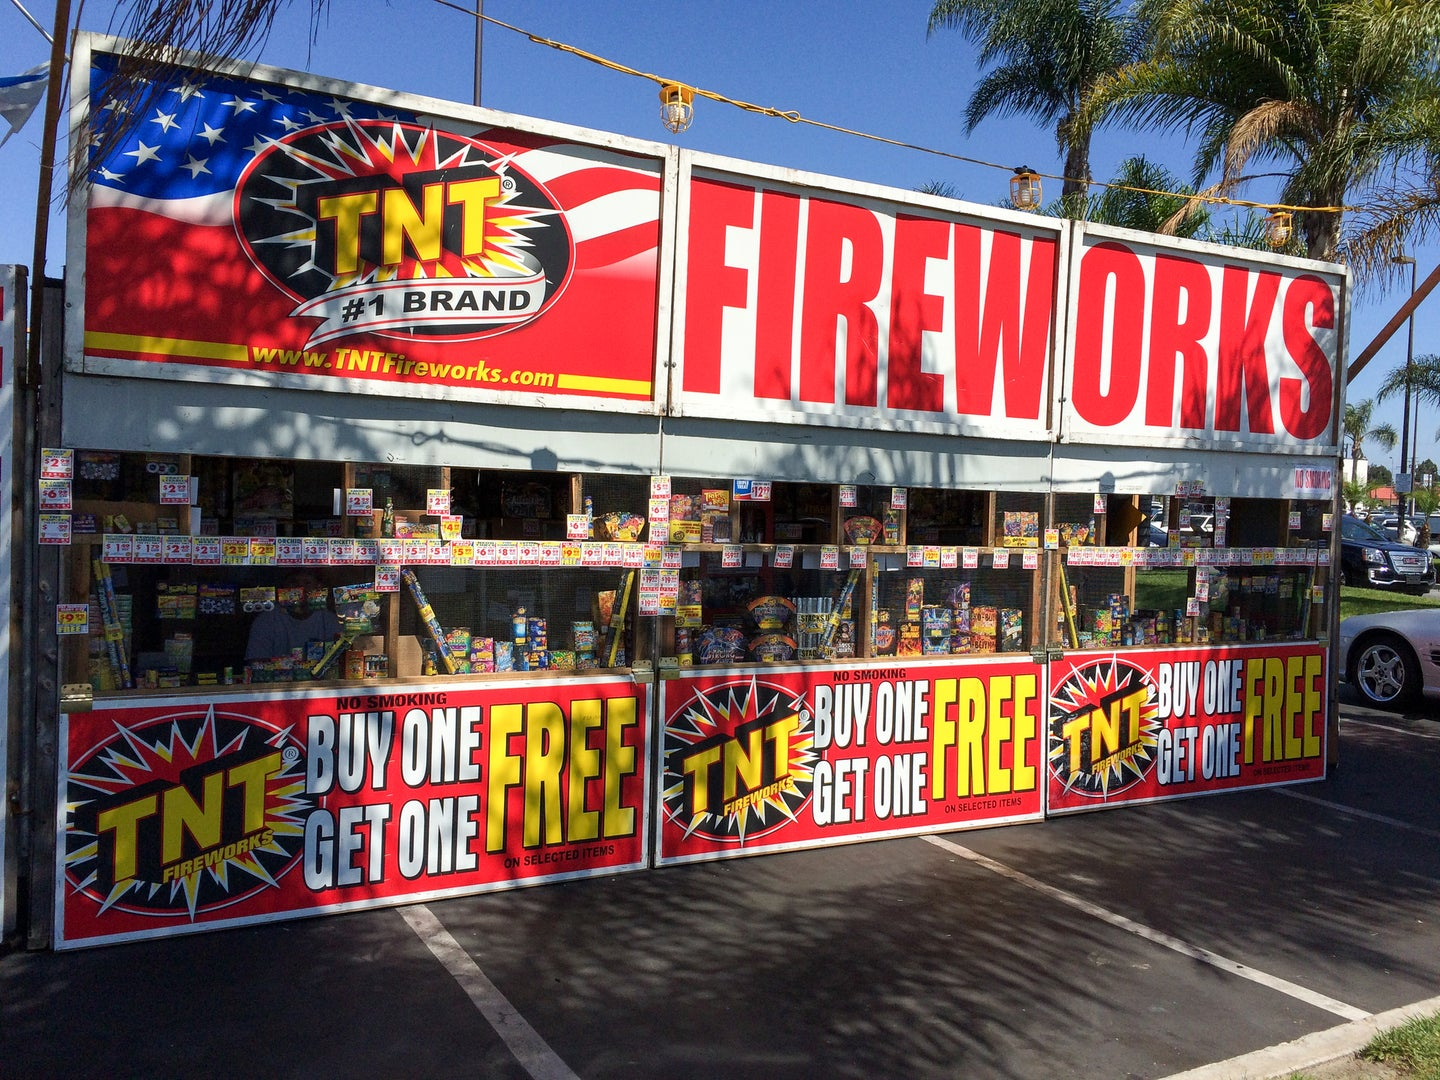 A fireworks stand with buy one get one free signs